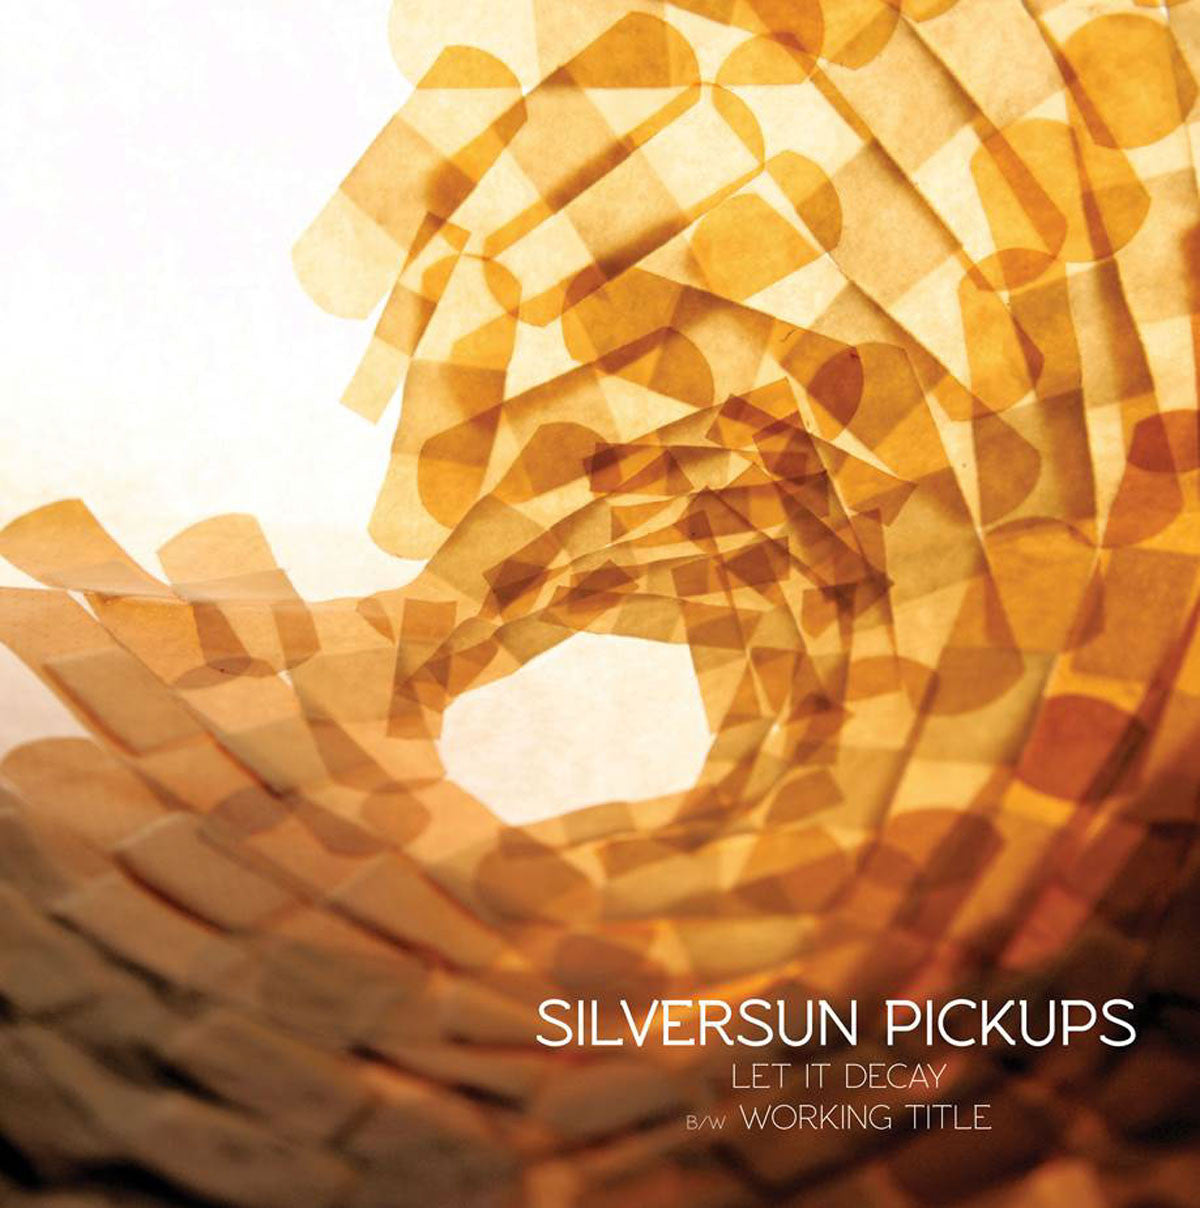 "Silversun Pickups: Let It Decay / Working Title 10"" (Record Store Day)"